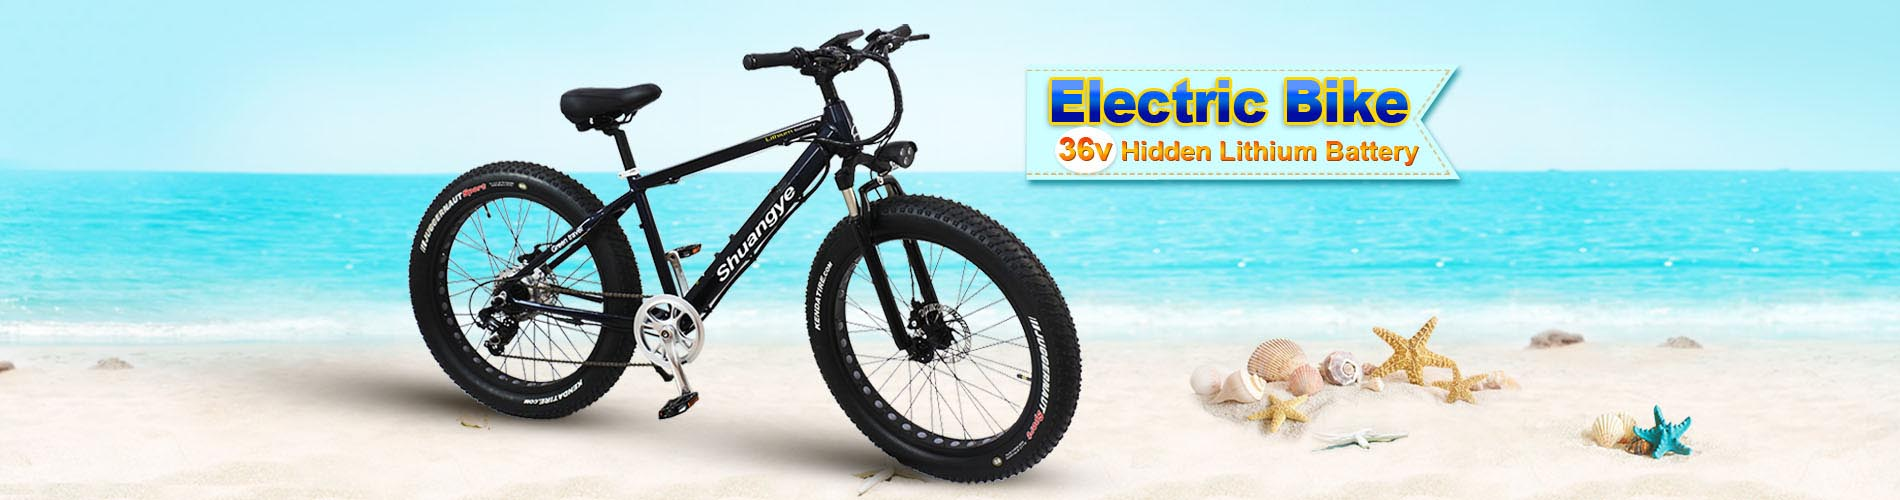 electric assisted bicycle for sale A6AH26